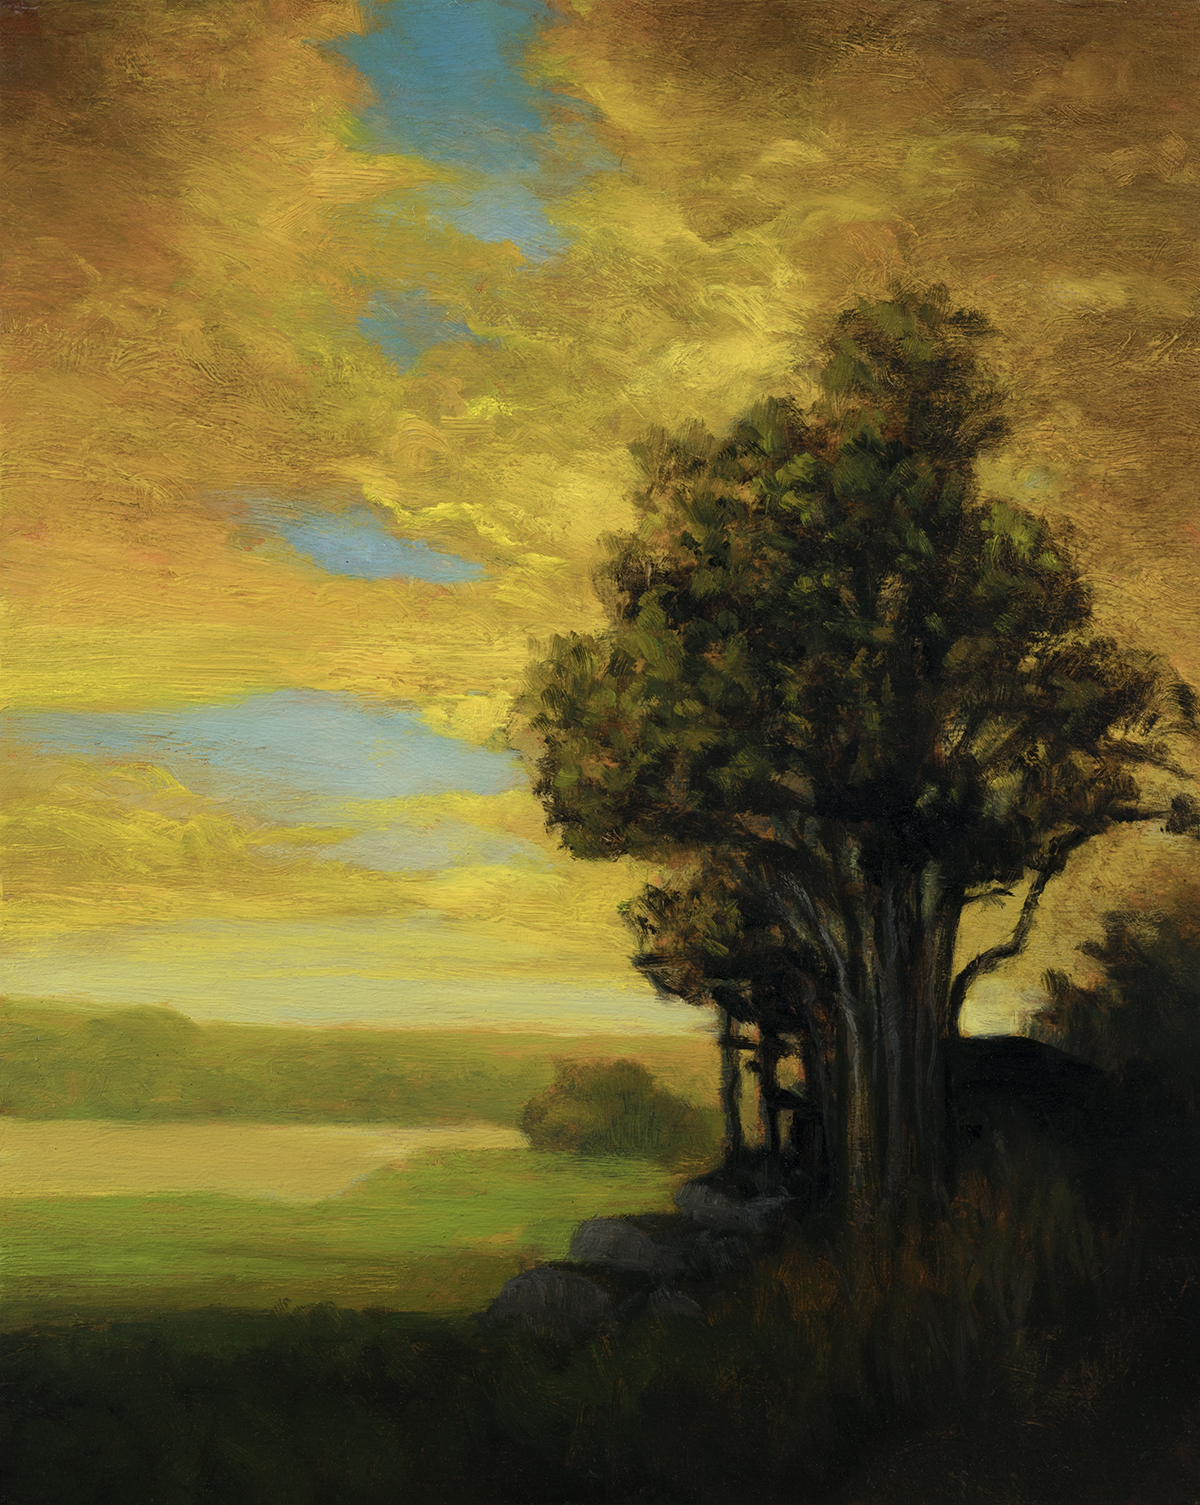 Golden Dusk by M Francis McCarthy - 8x10 Oil on Wood Panel